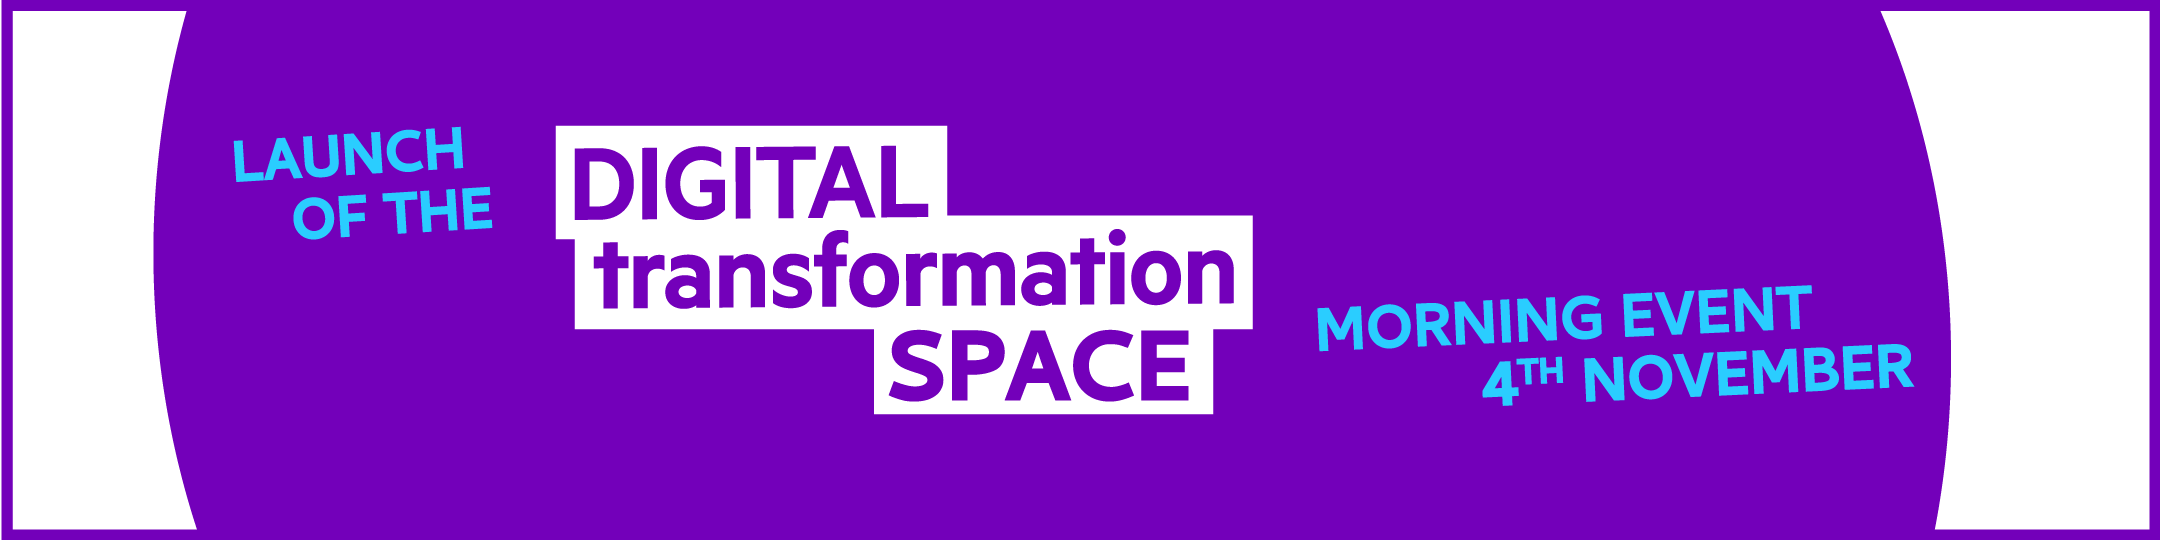 Digital Transformation space launch event banner